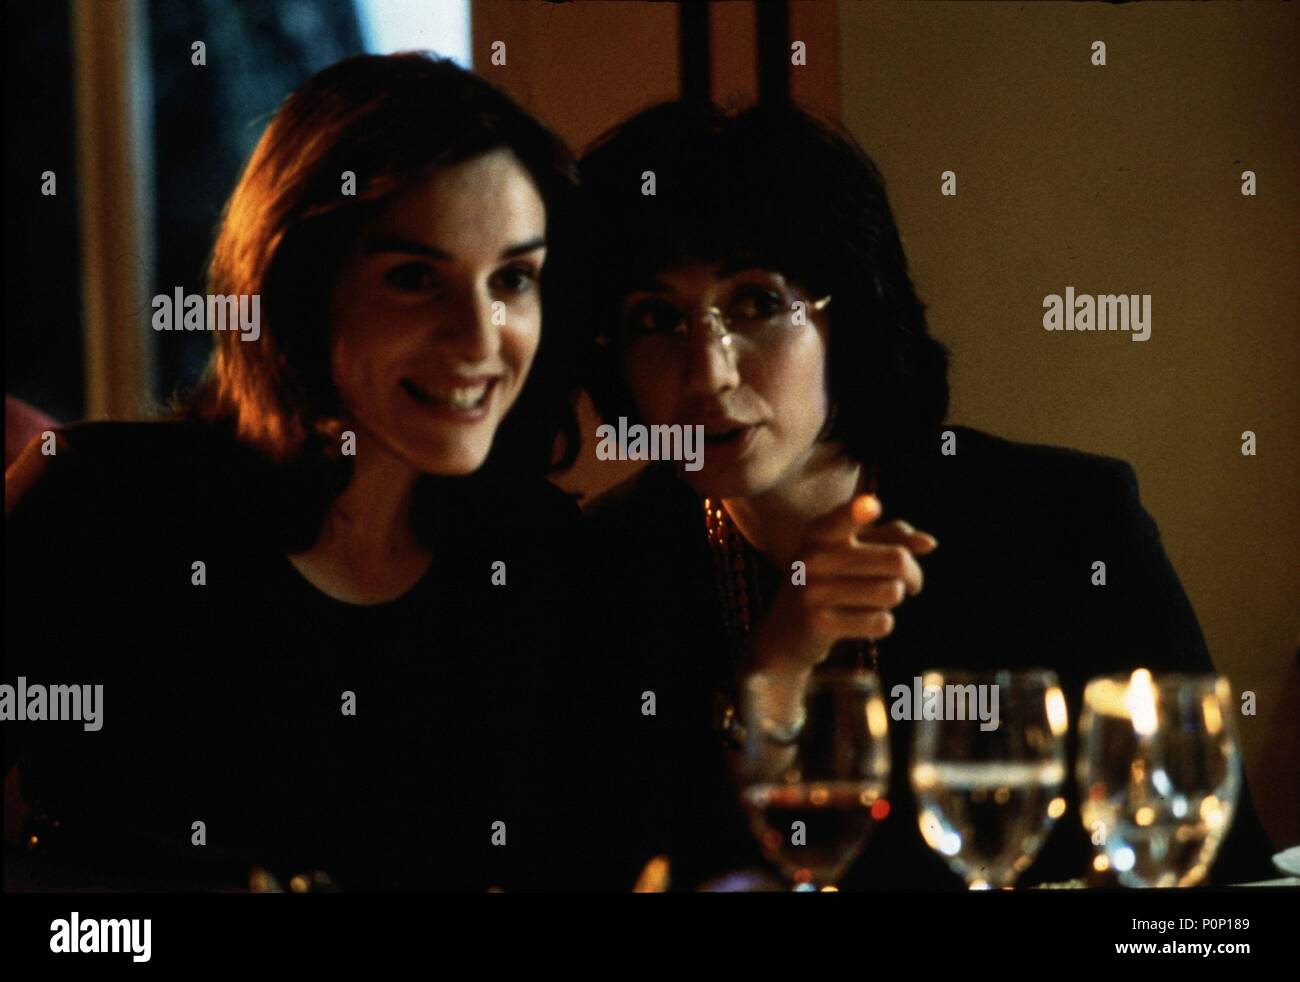 Anabel Alonso Hot anabel stock photos & anabel stock images - page 3 - alamy